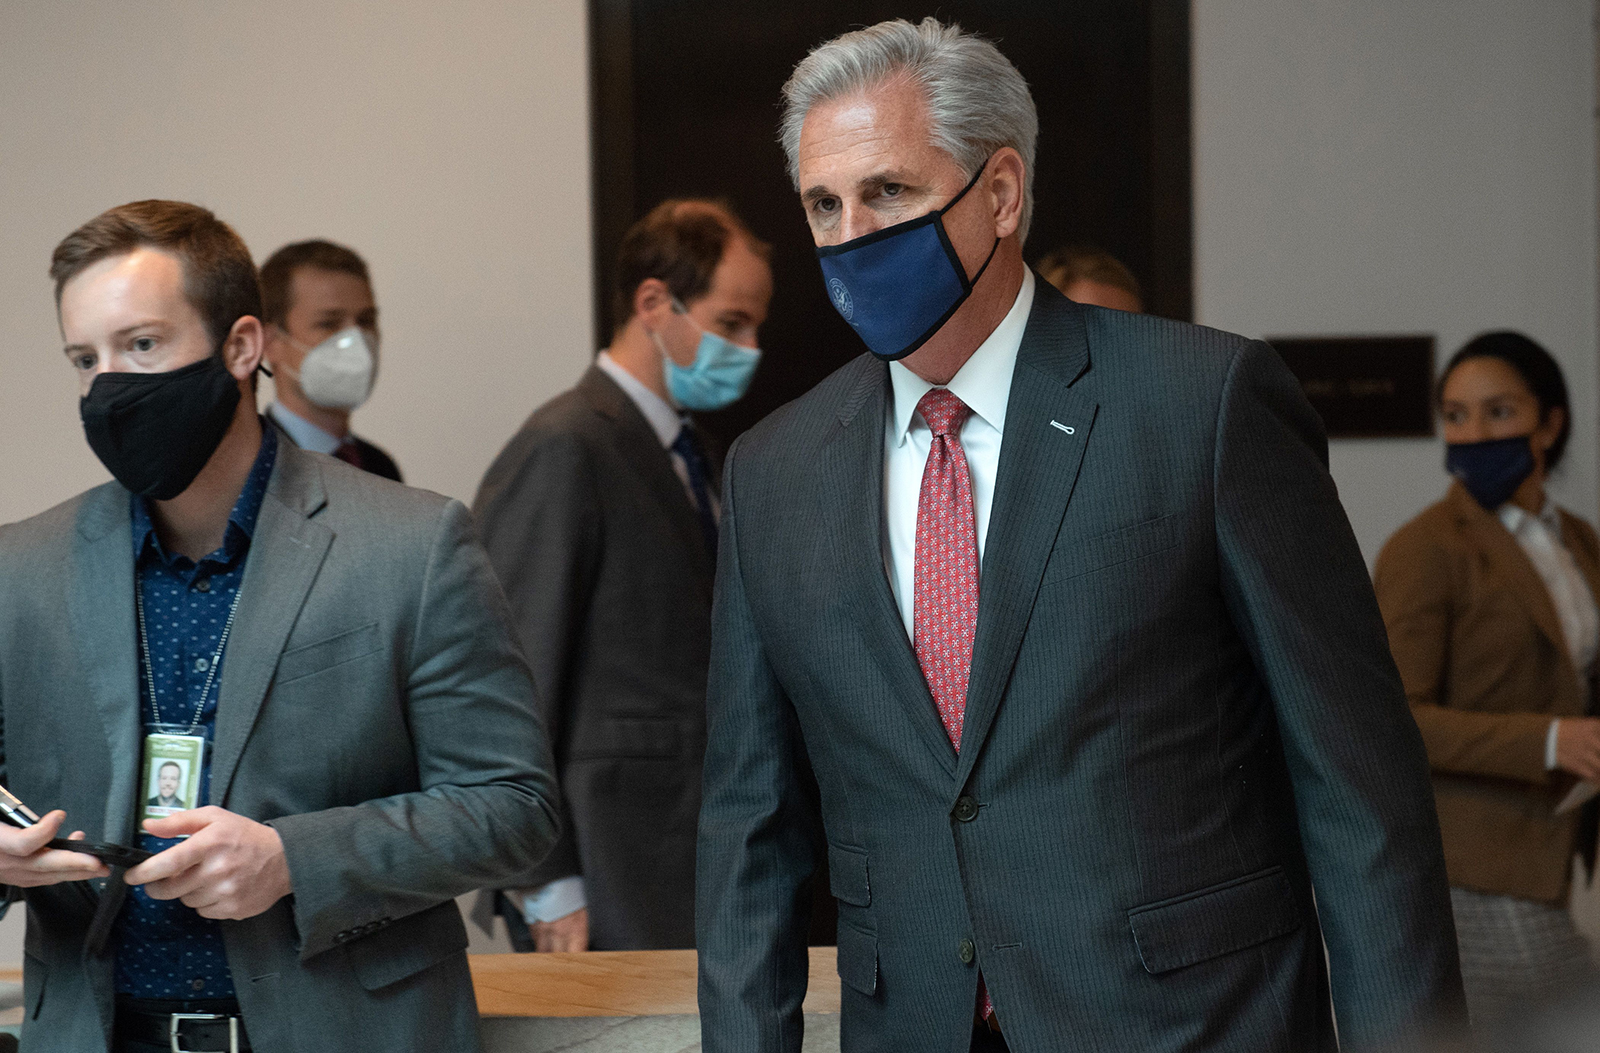 House Minority Leader Kevin McCarthy arrives for a meeting on Capitol Hill in Washington, DC on December 18, 2020.